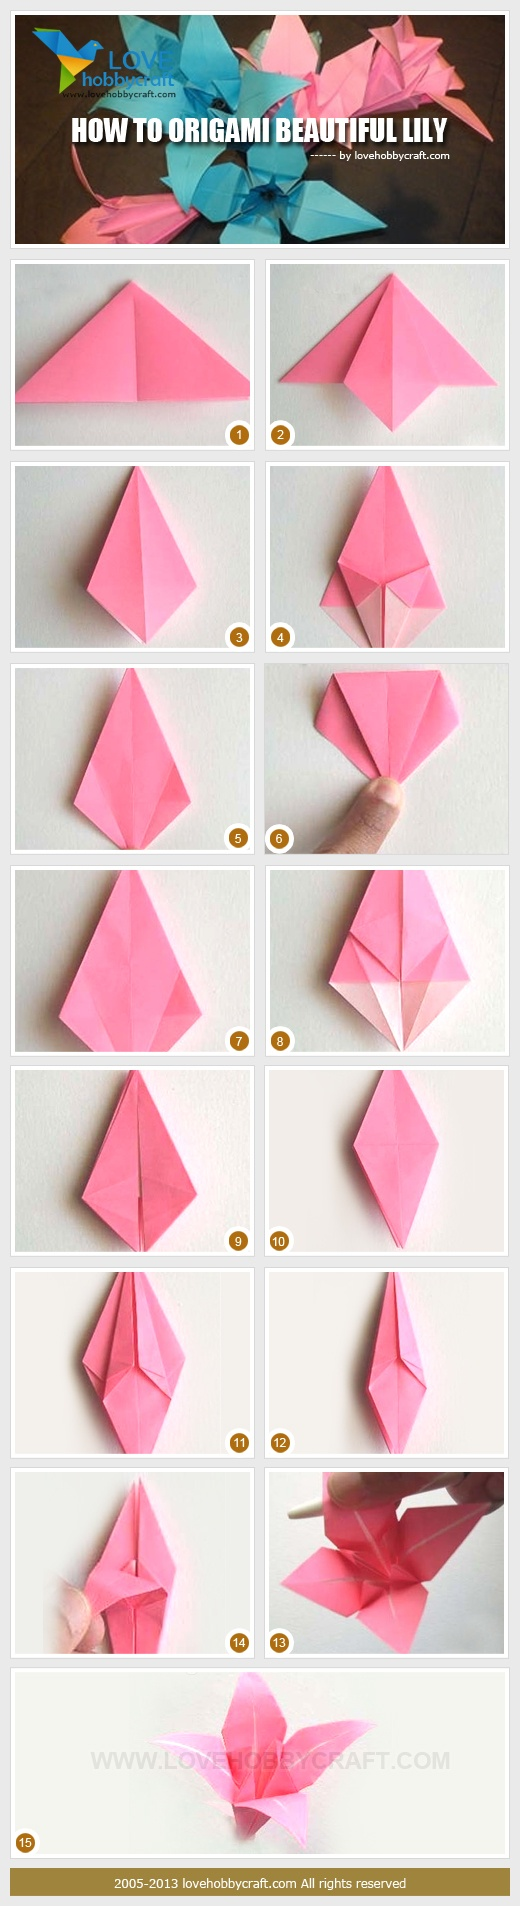 Fake flowers for crafts - Paper Flower